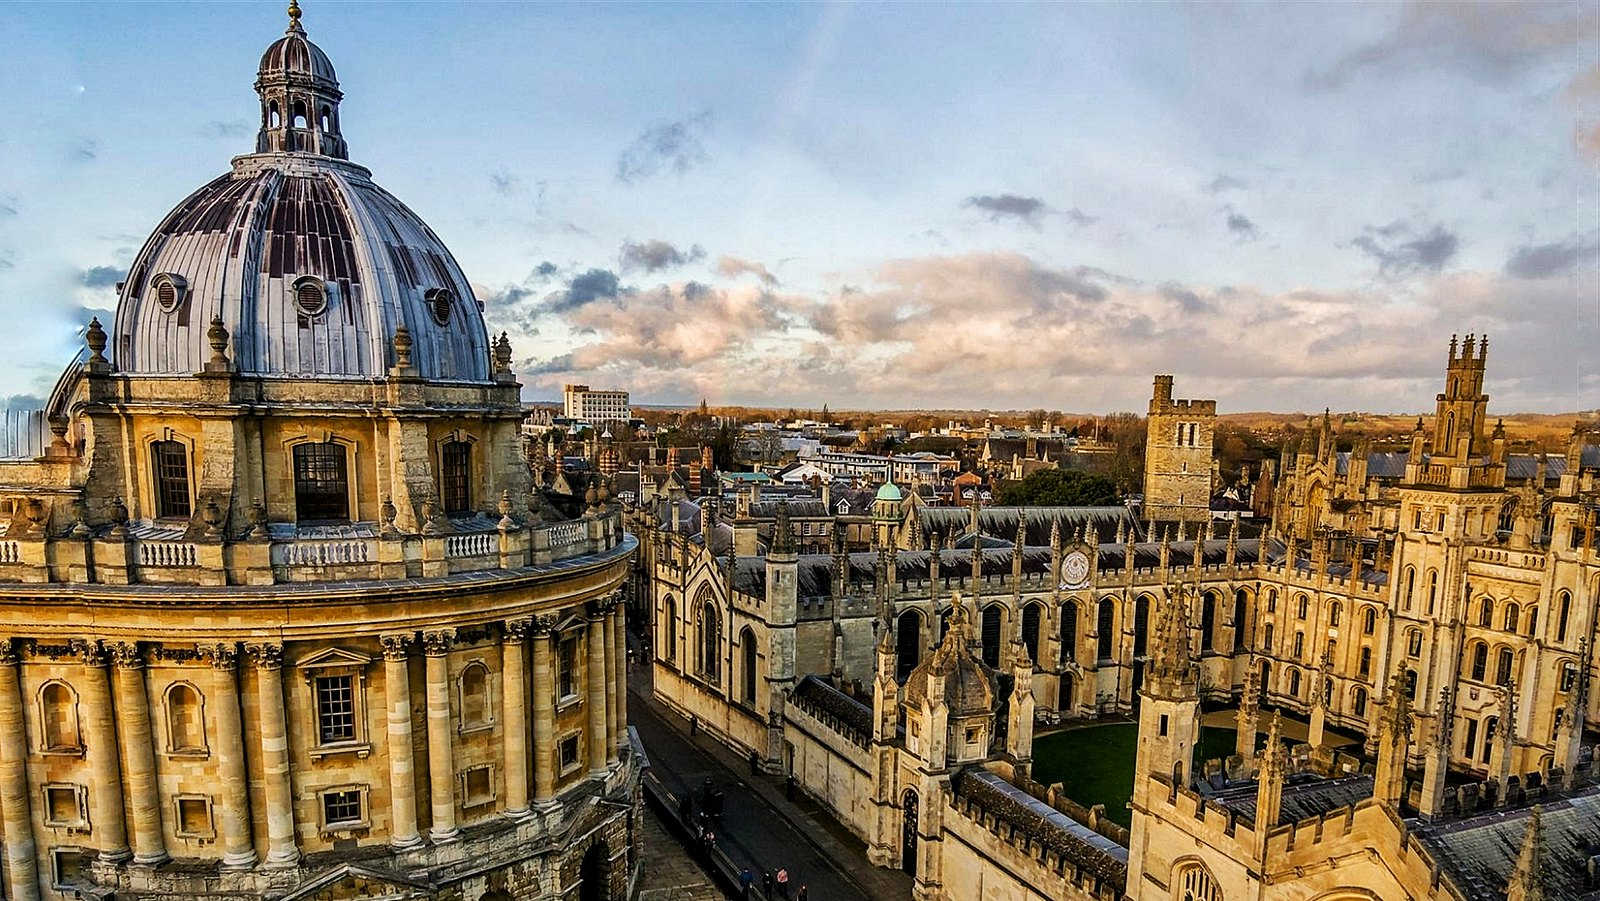 The Top 10 Things to See and Do In Oxford